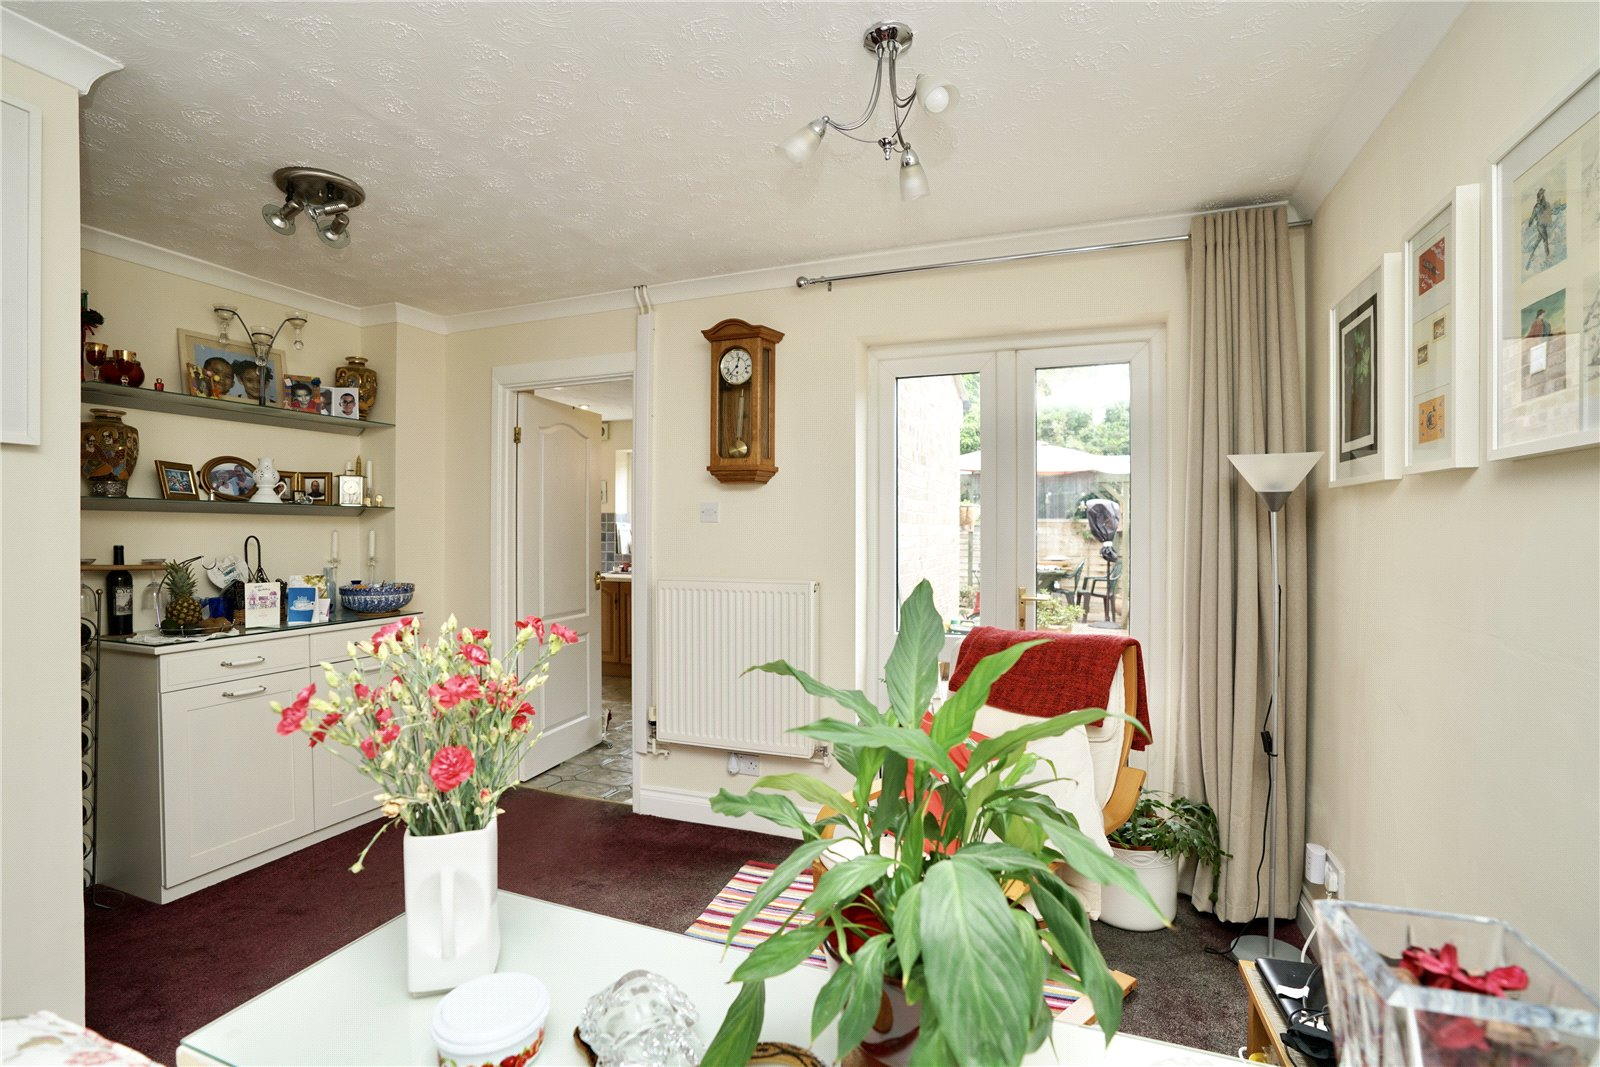 3 bed house for sale in Cunningham Way, Eaton Socon 4